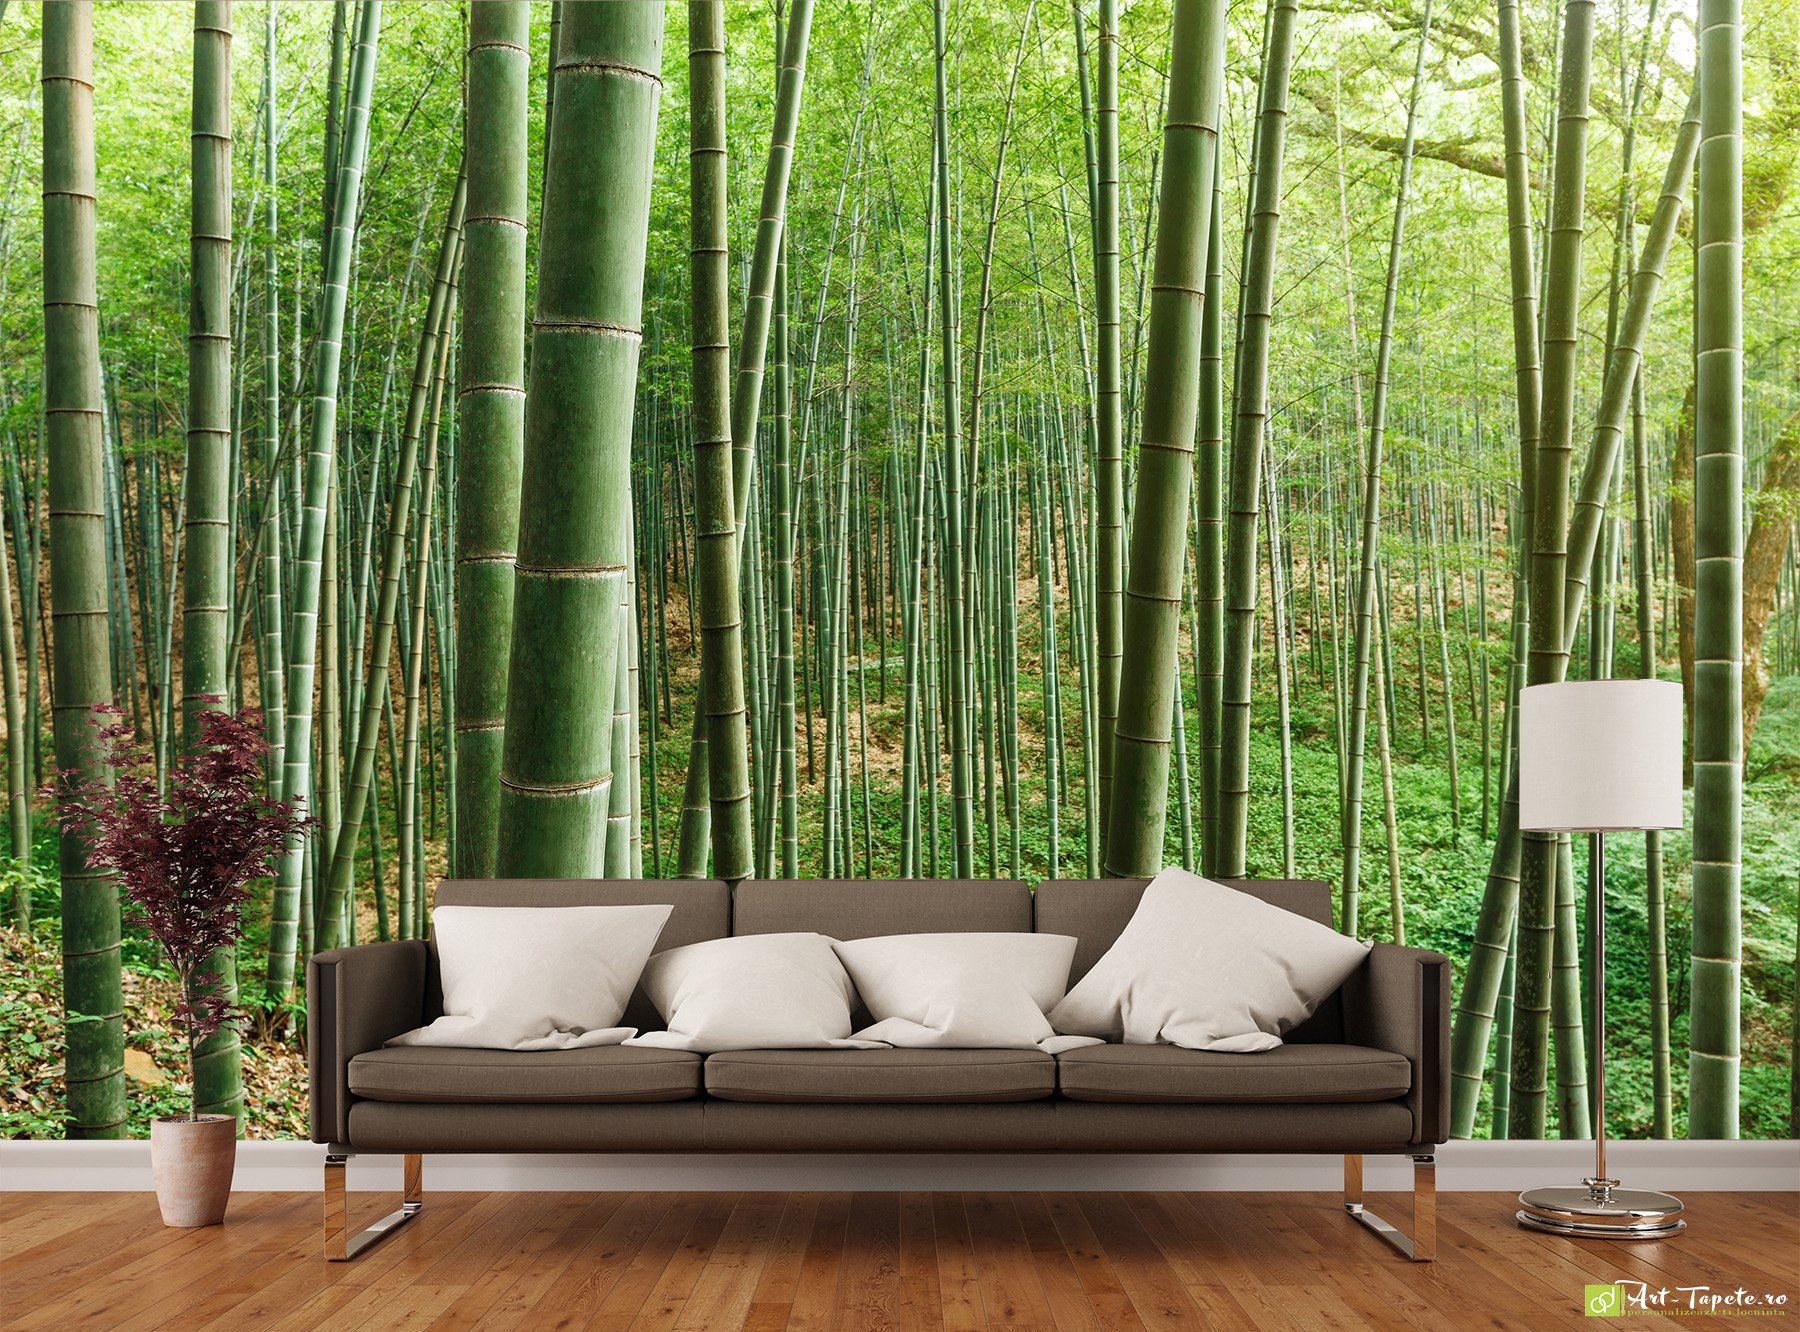 Nature wallpaper wall murals bamboo forest 8 for Bamboo forest wall mural wallpaper